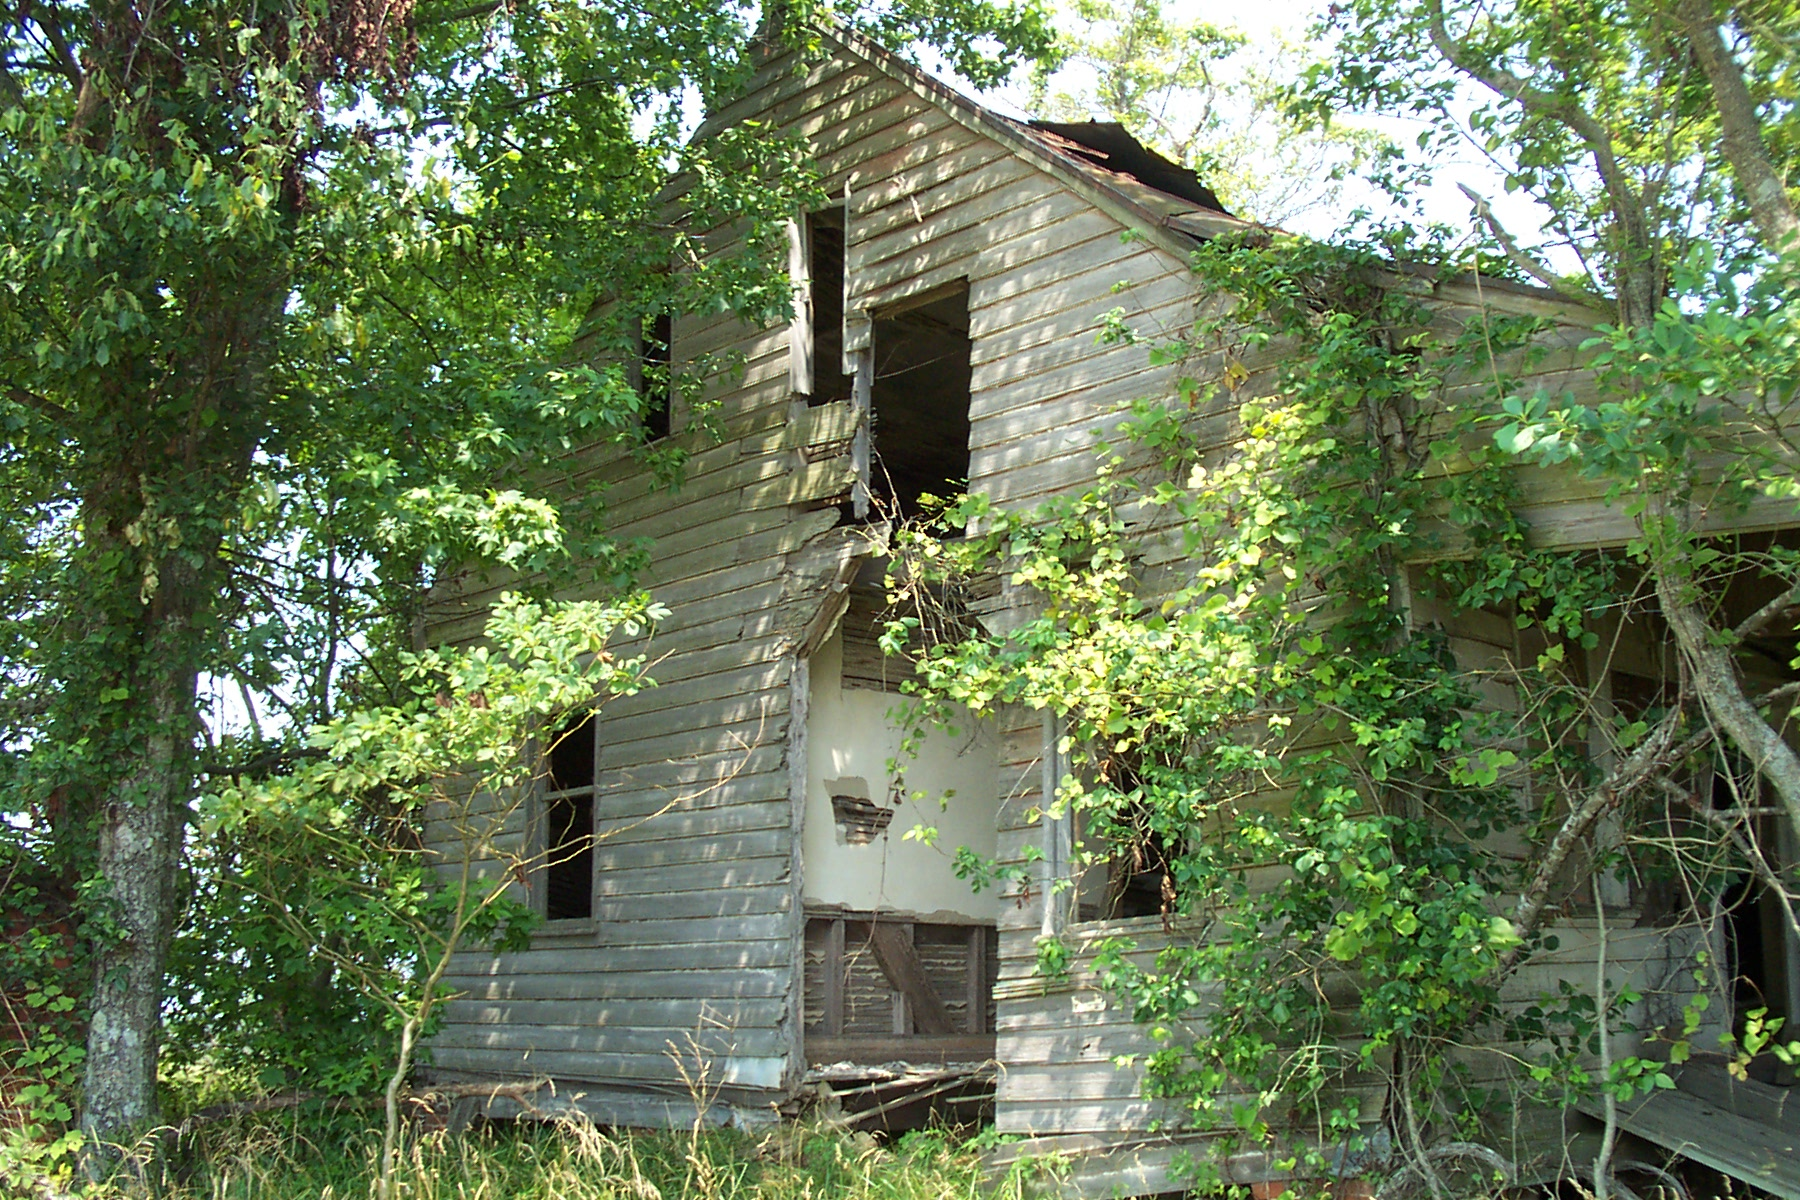 nat turner  the decaying remains of the whitehead house hidden away far from the modern road system